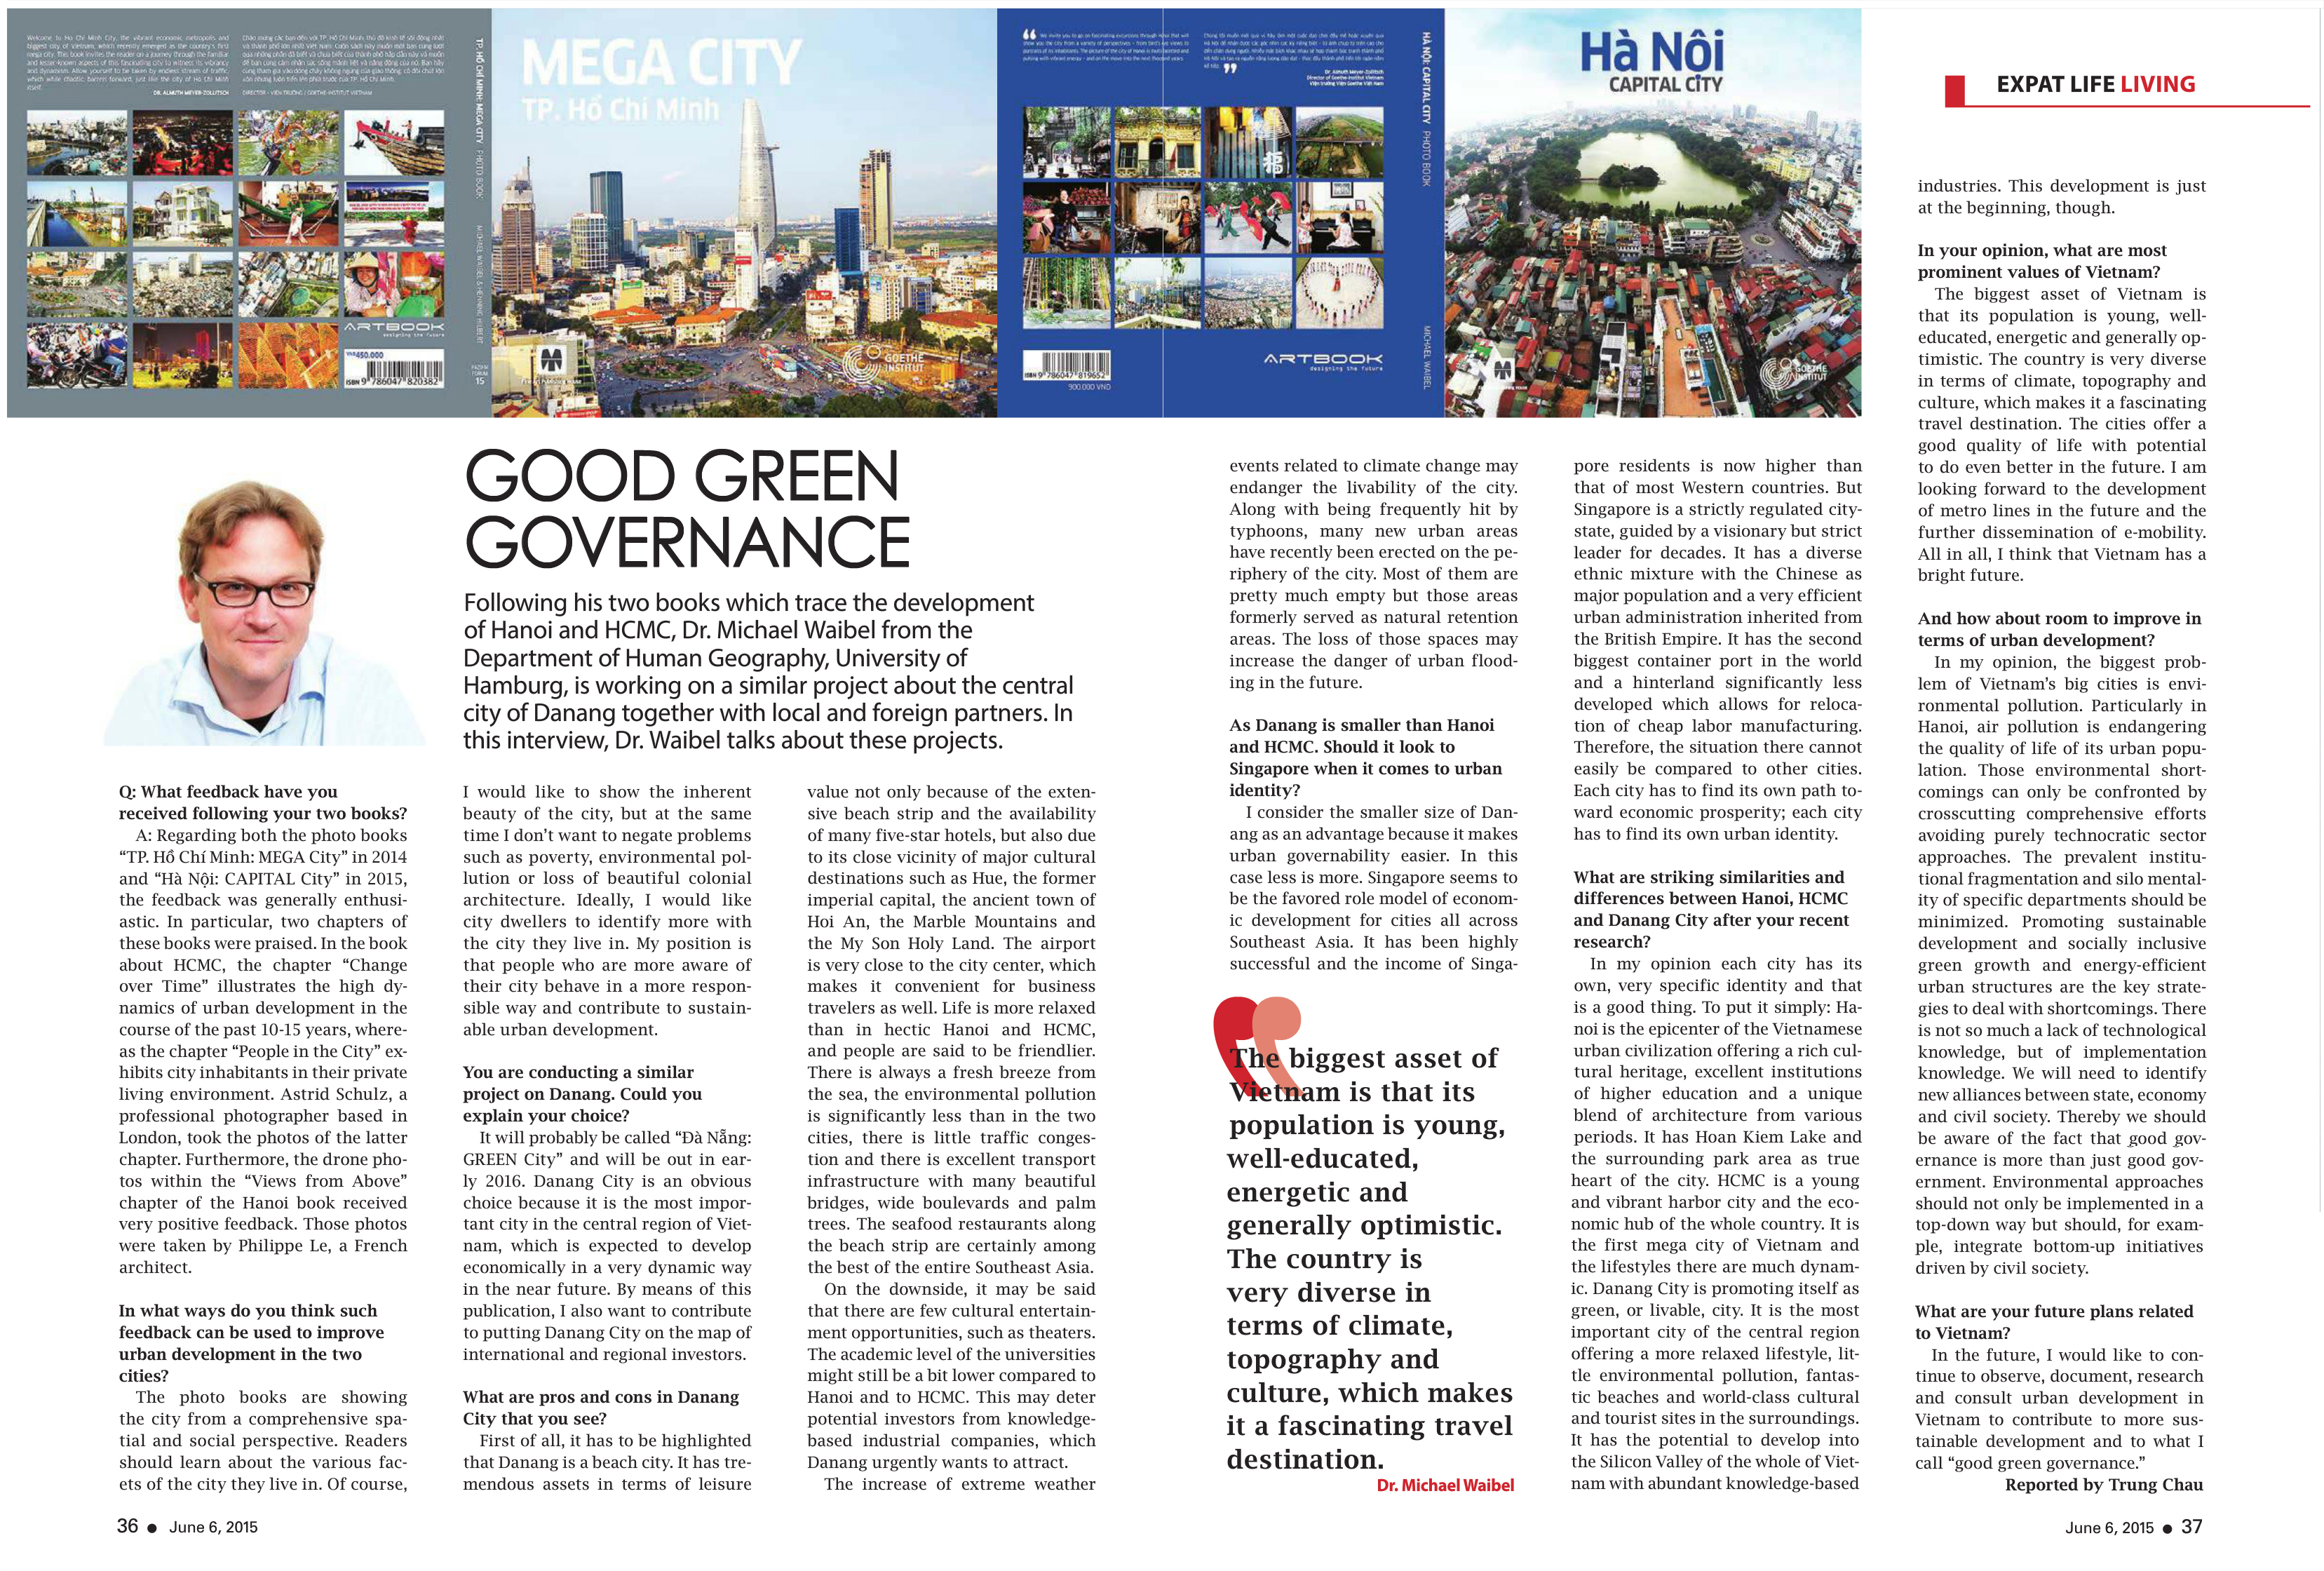 Saigon Times Weekly, No. 23 (1236), 06 June 2015- Good Green Governance_WAIBEL, p. 36-37